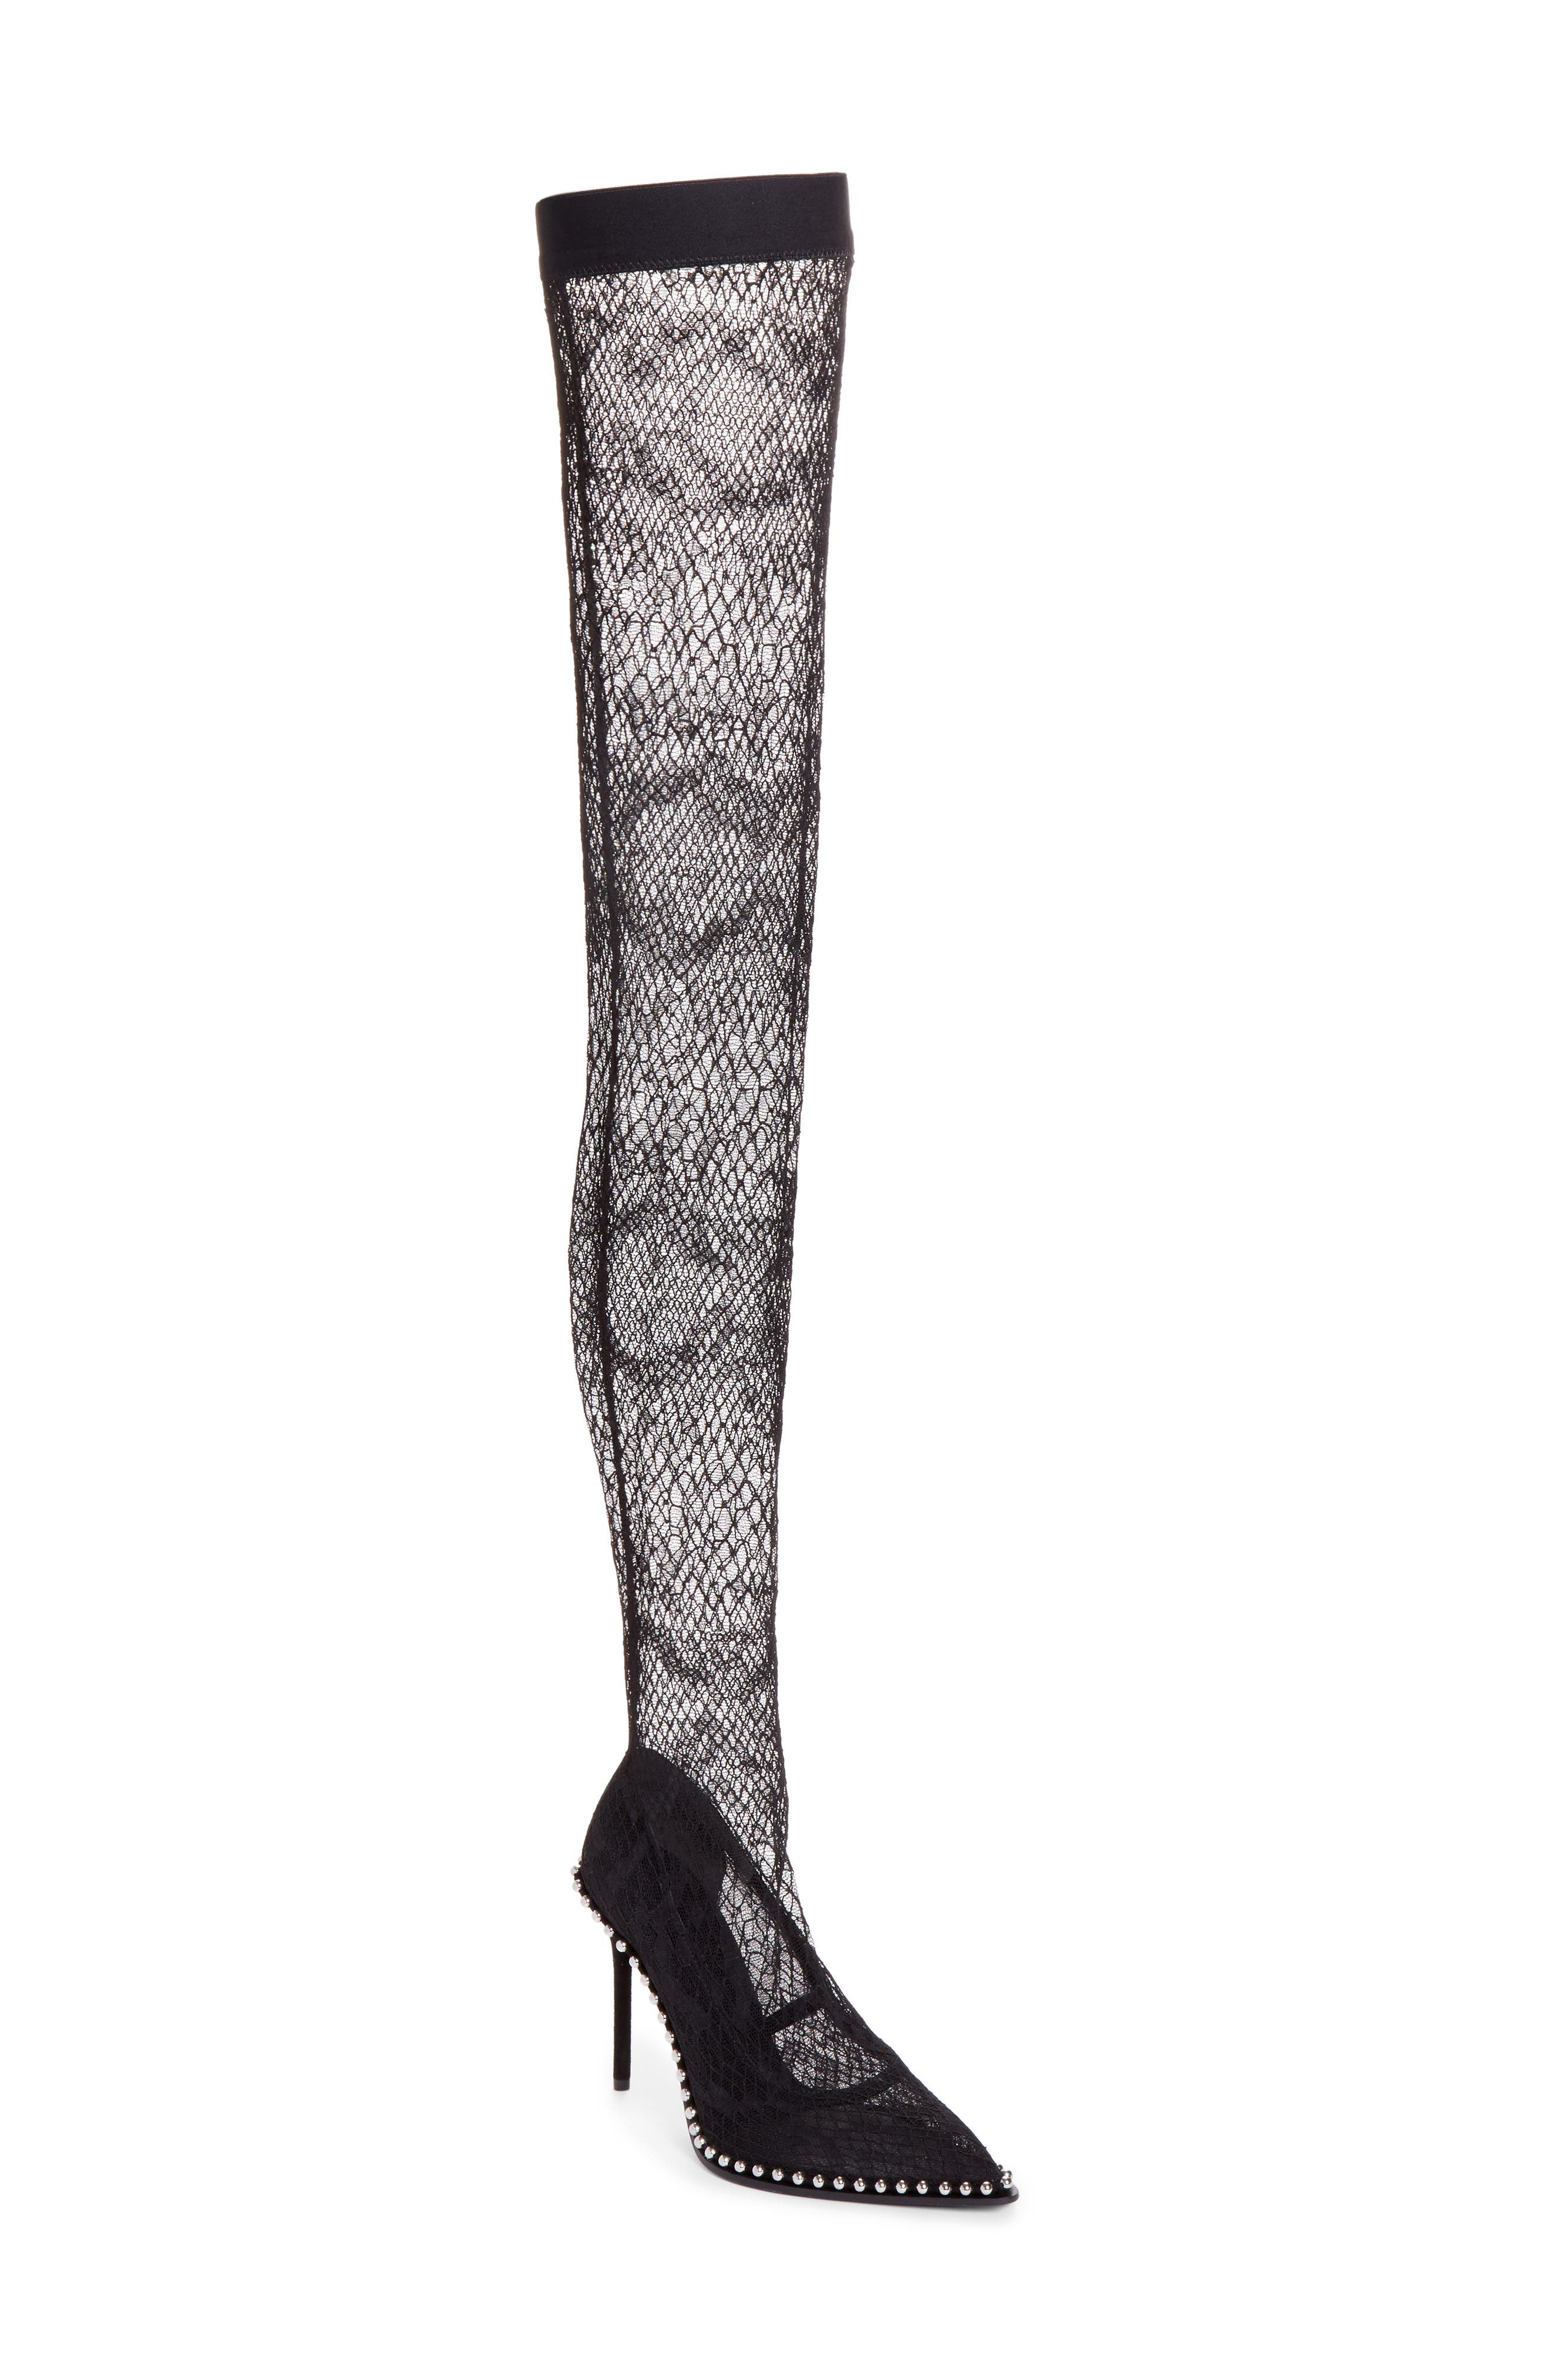 Lyra Thigh-High Fishnet Stocking Pump,                         Main,                         color, Black